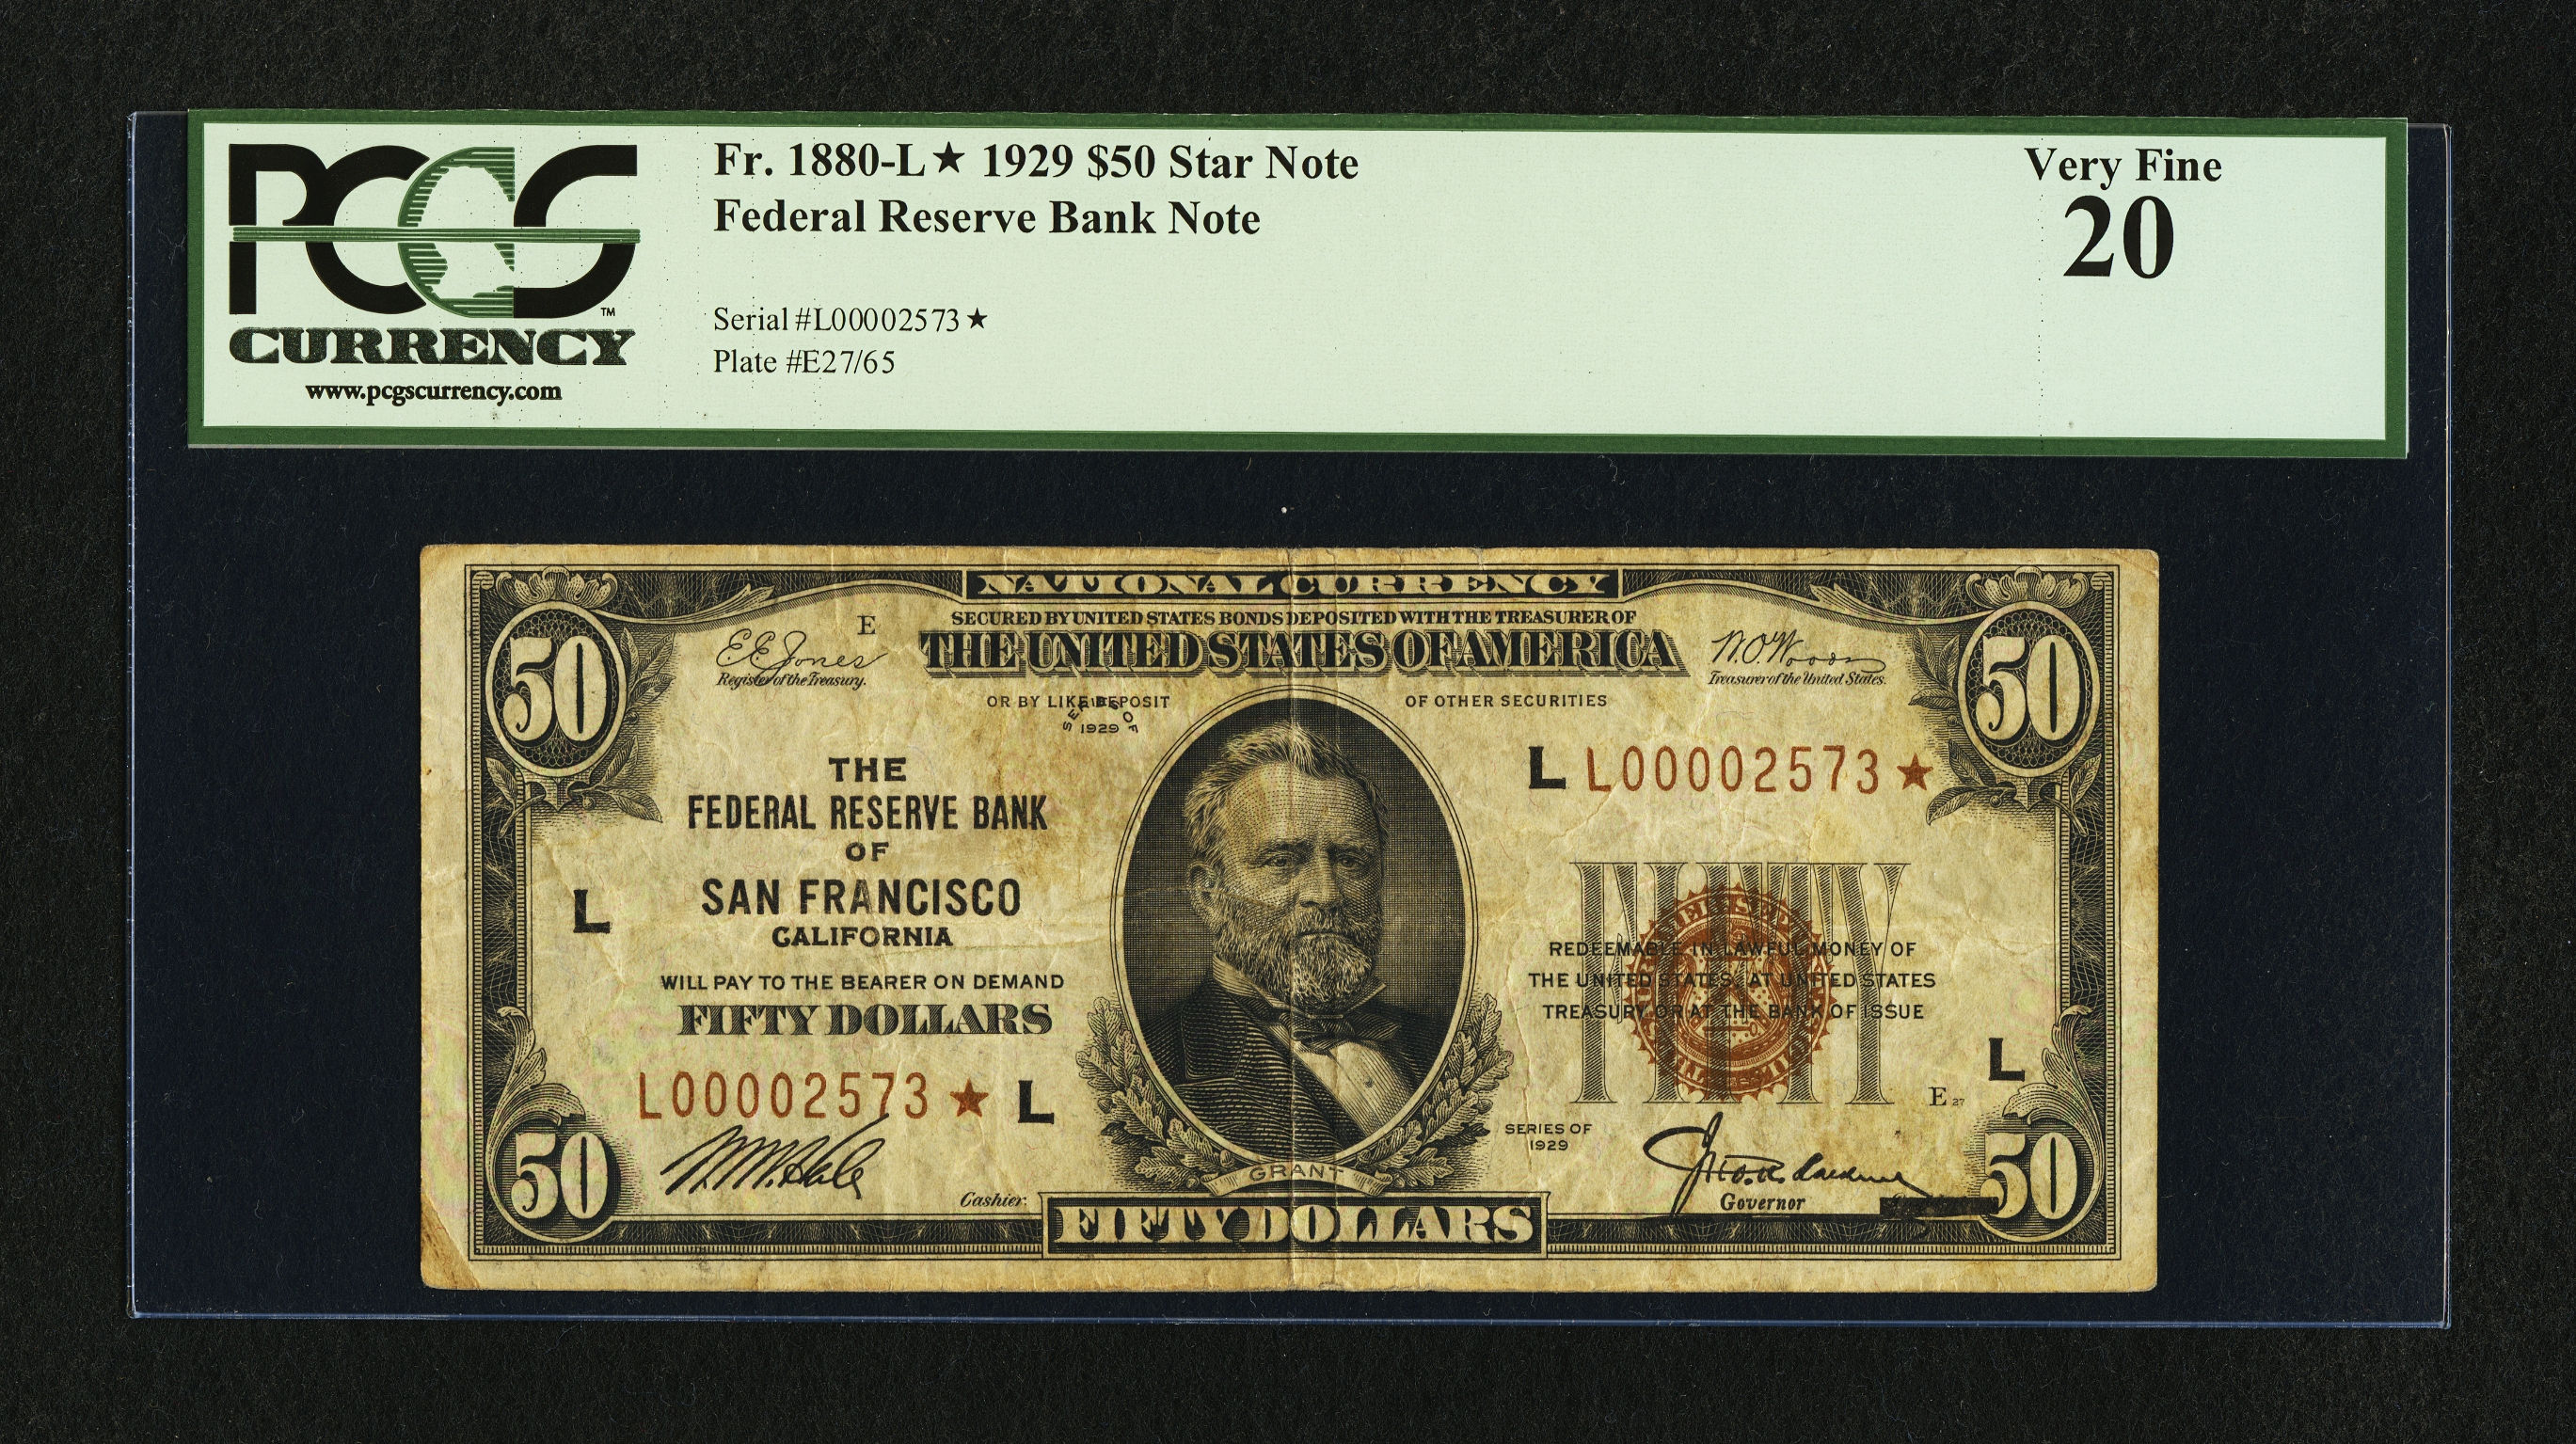 Fr. 1880-L* 1929 $50 Federal Reserve Bank Note Star from San Francisco - Heritage Auctions:  September 9, 2011 - PCGS VF 20 Sold for $4,312.50